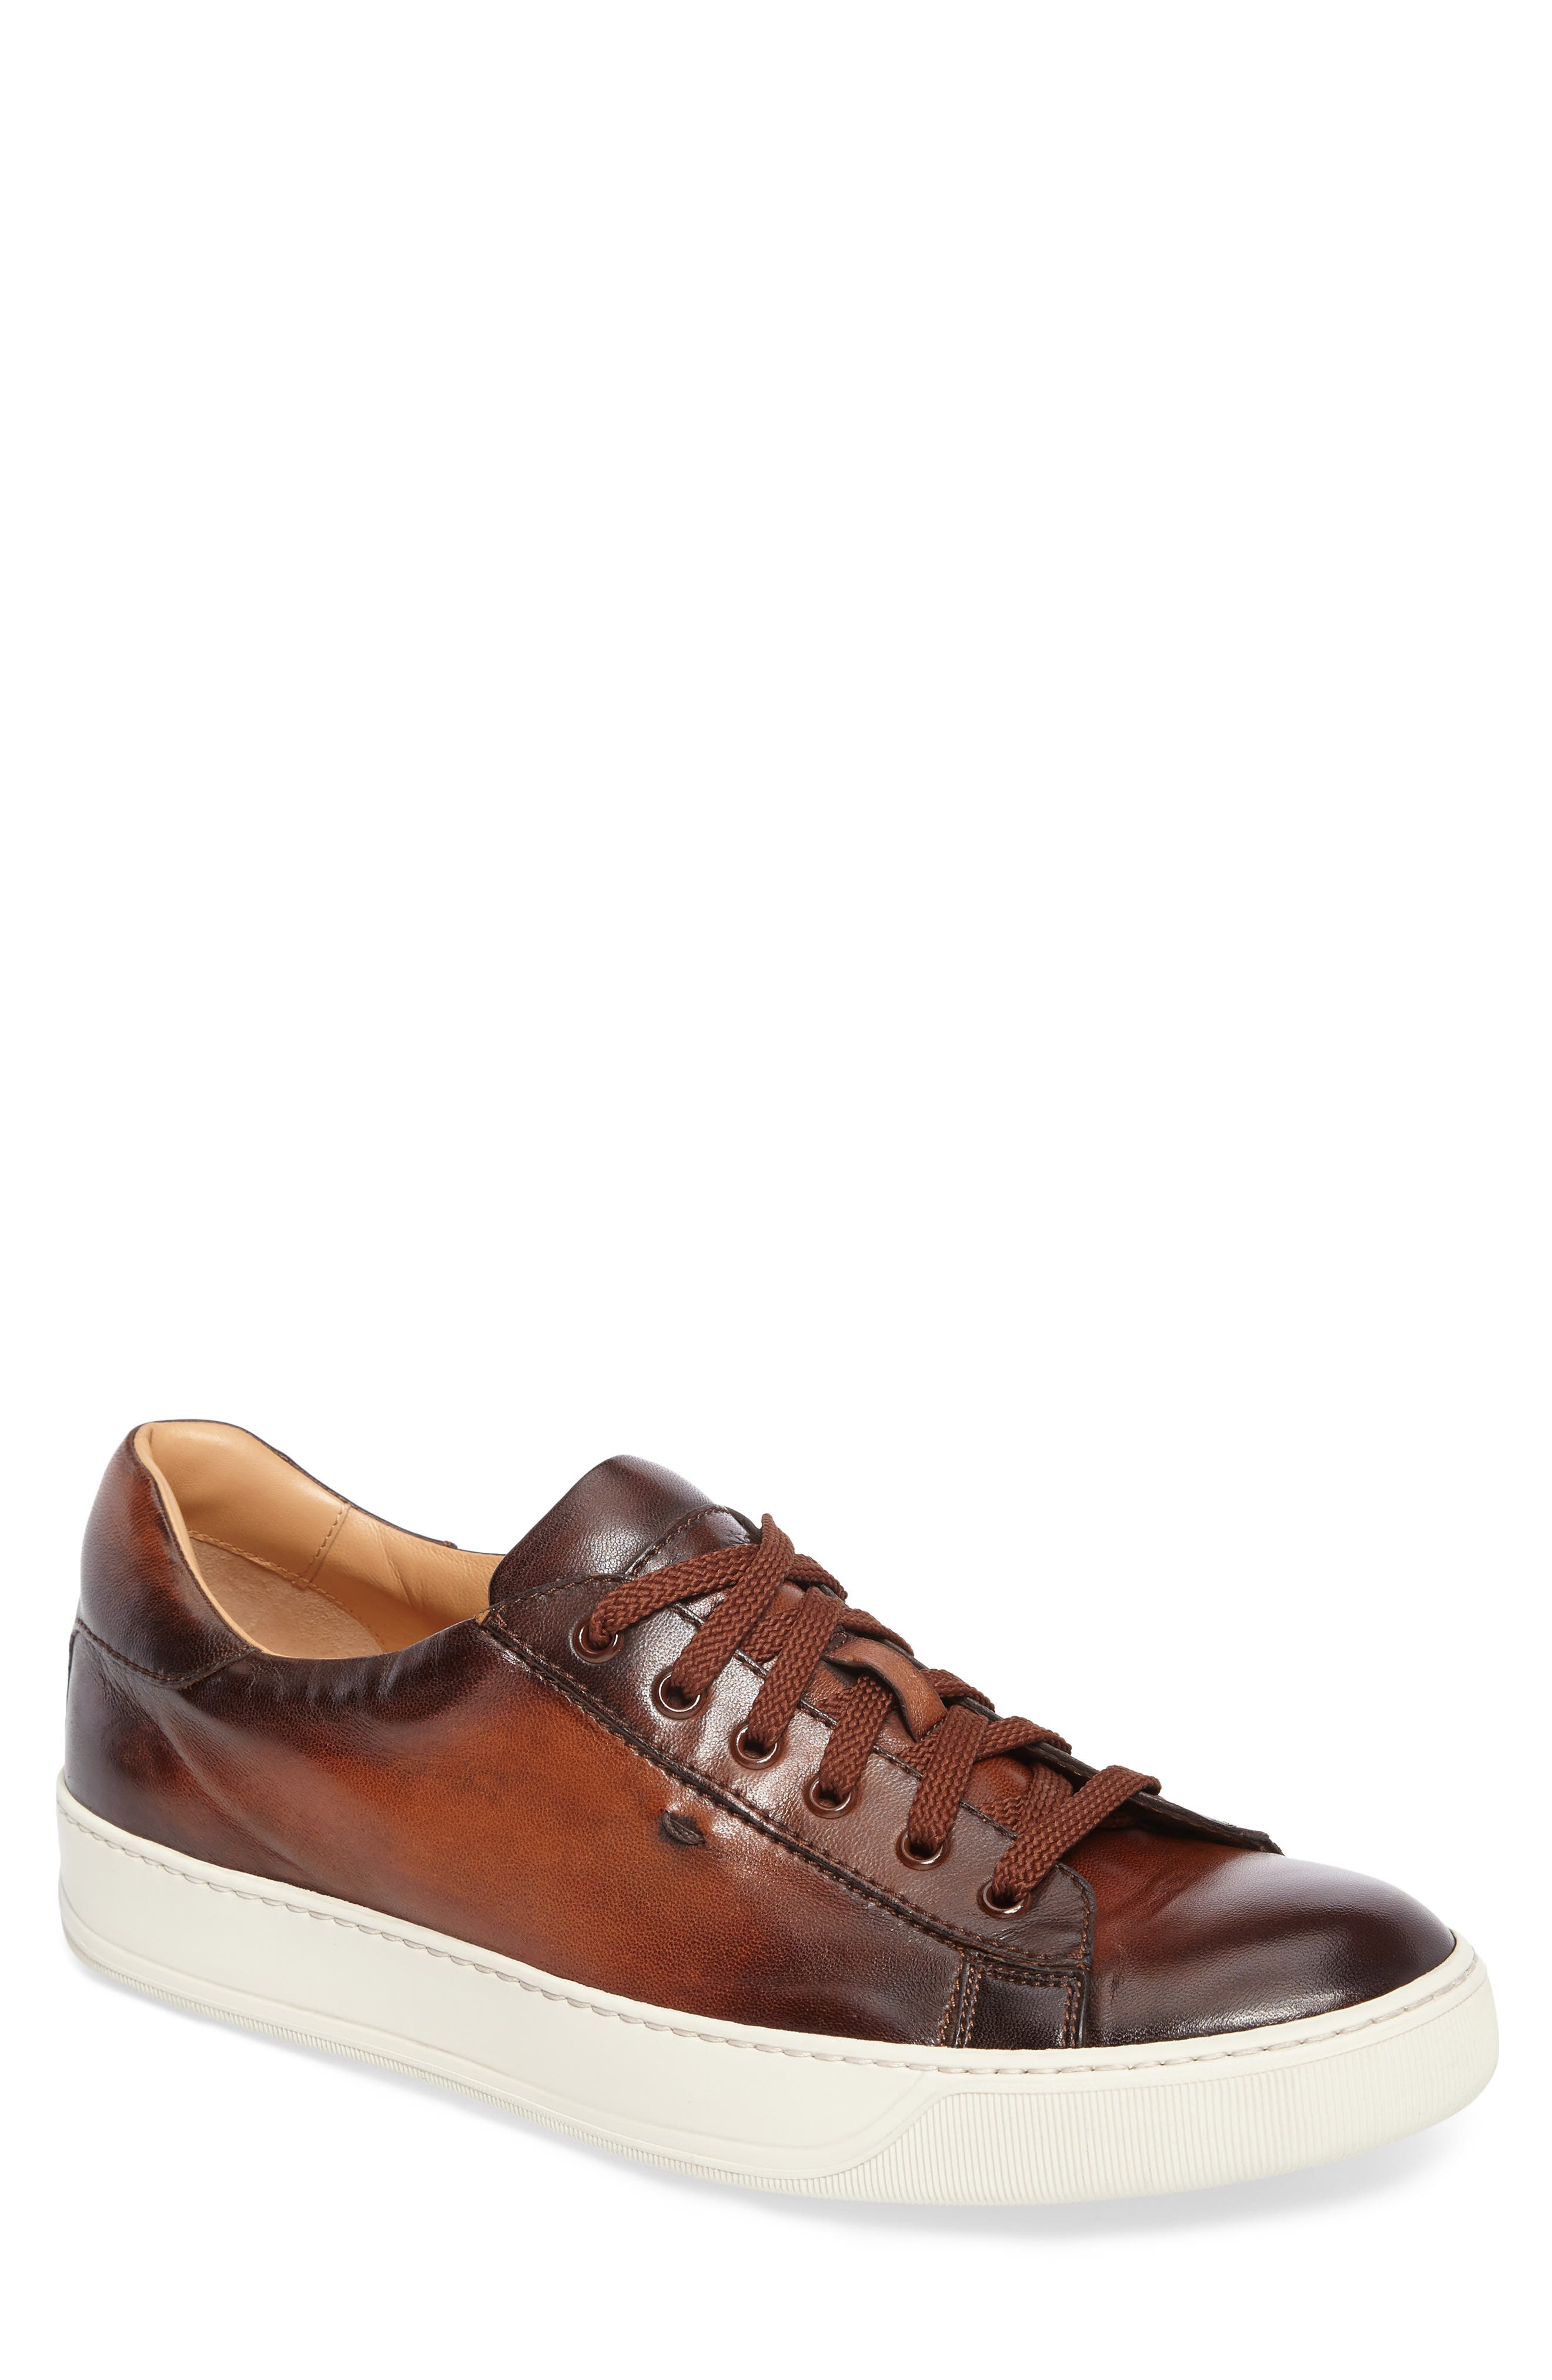 'Apache' Lace-Up Sneaker,                             Main thumbnail 1, color,                             Brown